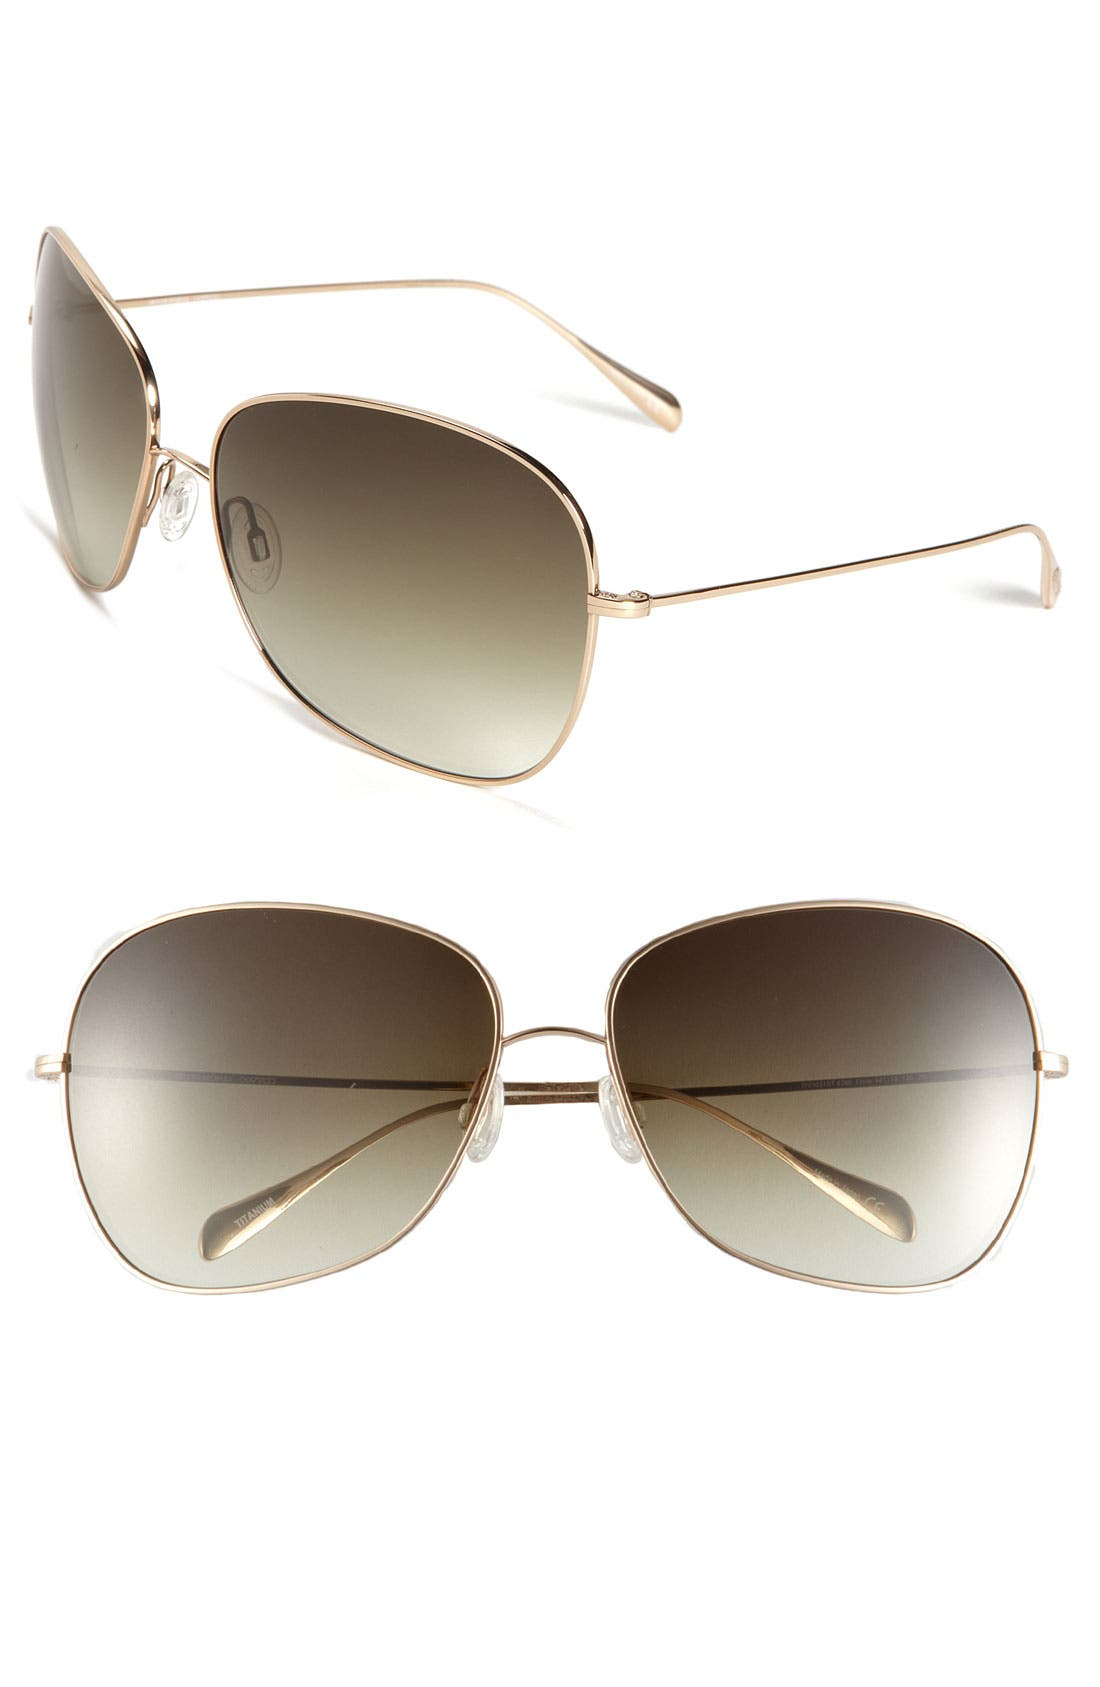 Oliver Peoples Sunglasses | Nordstrom